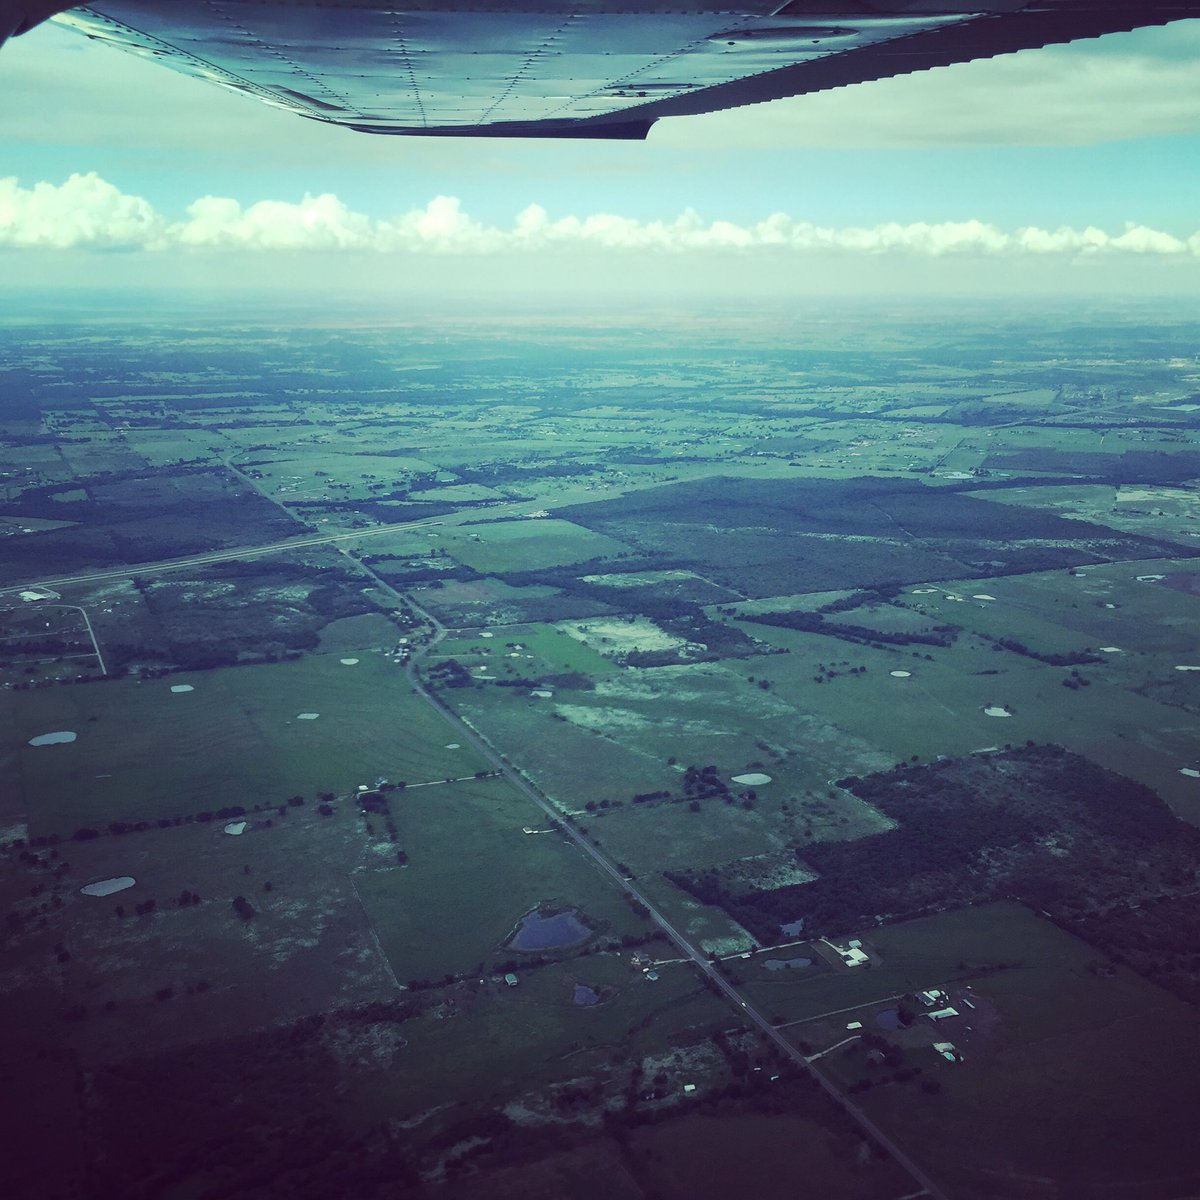 #Texas does just goes on and on... #ferryPILOT #FLYINGfriday #flying #pilotlife #arewethereyet<br>http://pic.twitter.com/8zVHxnnFuk &ndash; bij Redbird Skyport